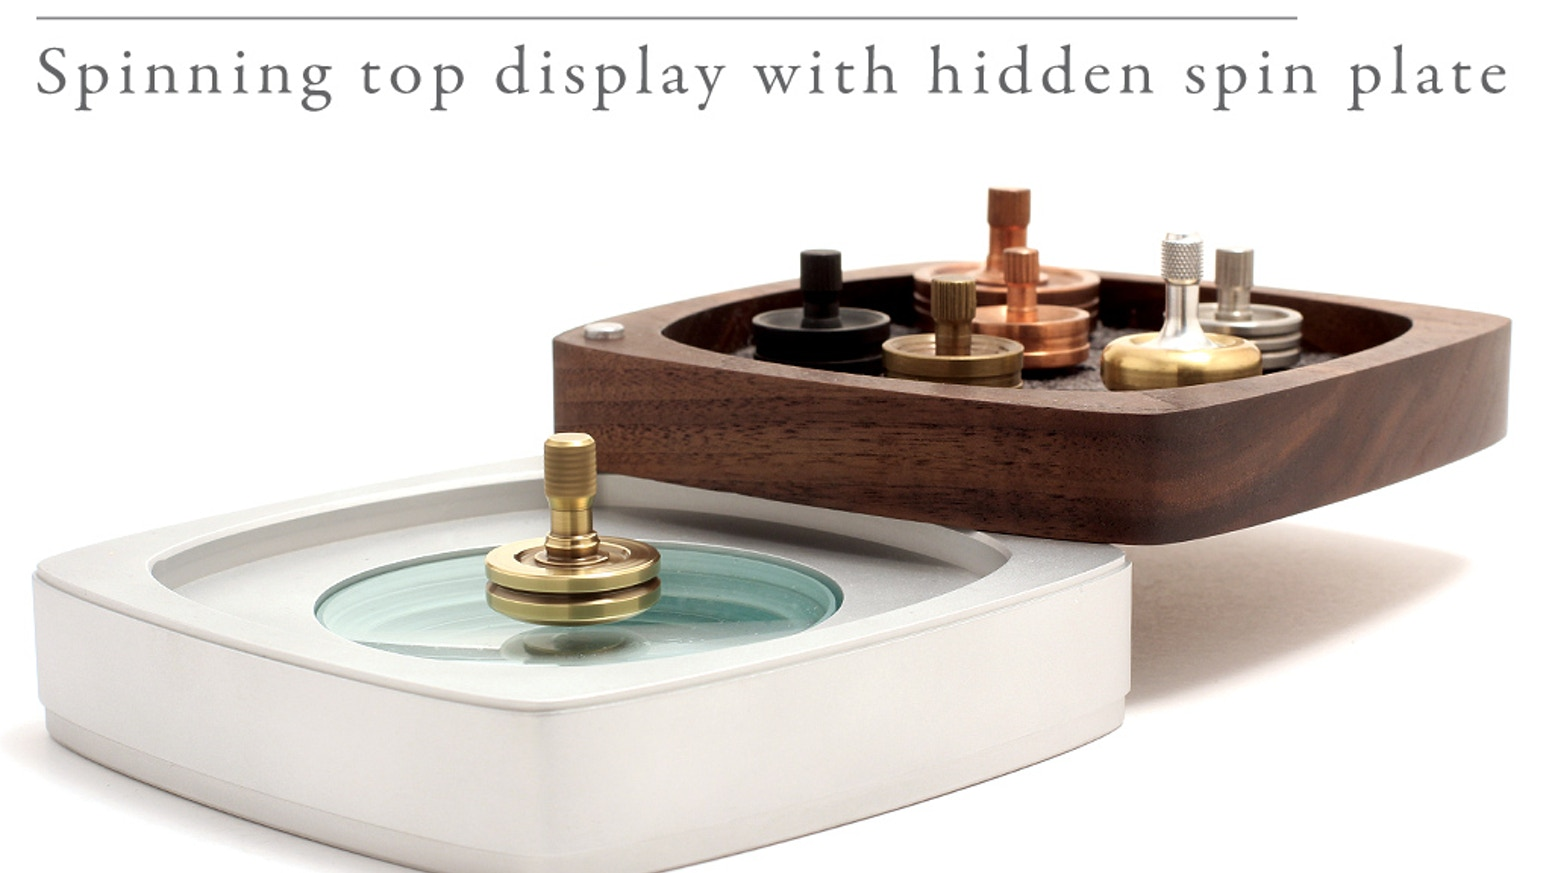 Display your spinning top collection and swing away to reveal the perfect spin plate.